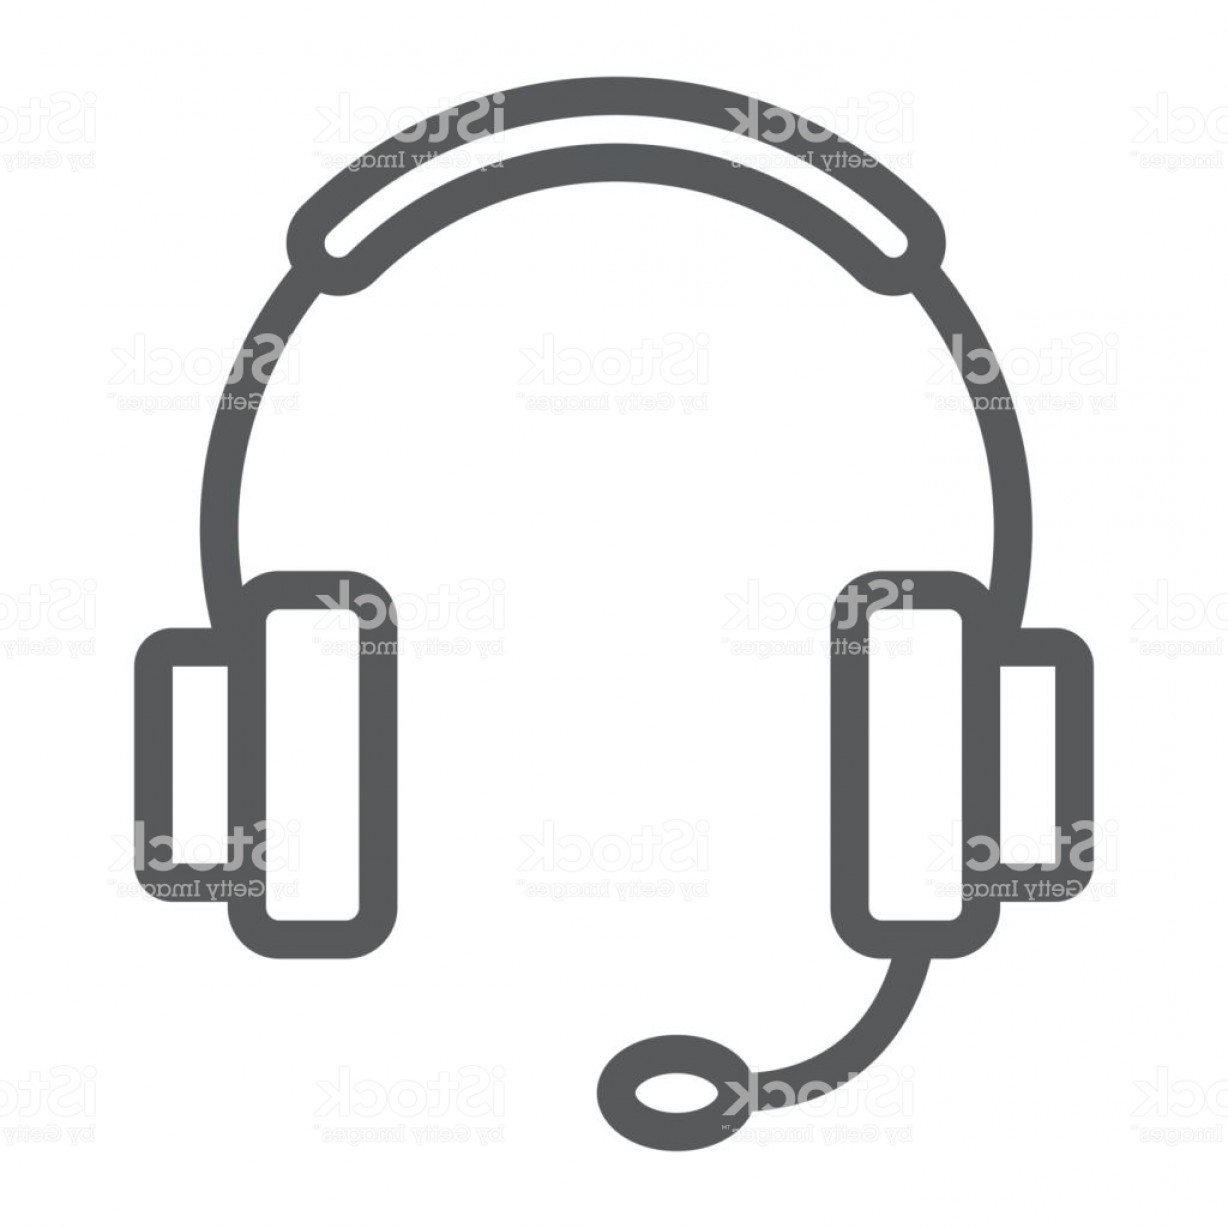 Support Vector Graphics: Tech Support Line Icon E Commerce And Marketing Headset Sign Vector Graphics A Gm